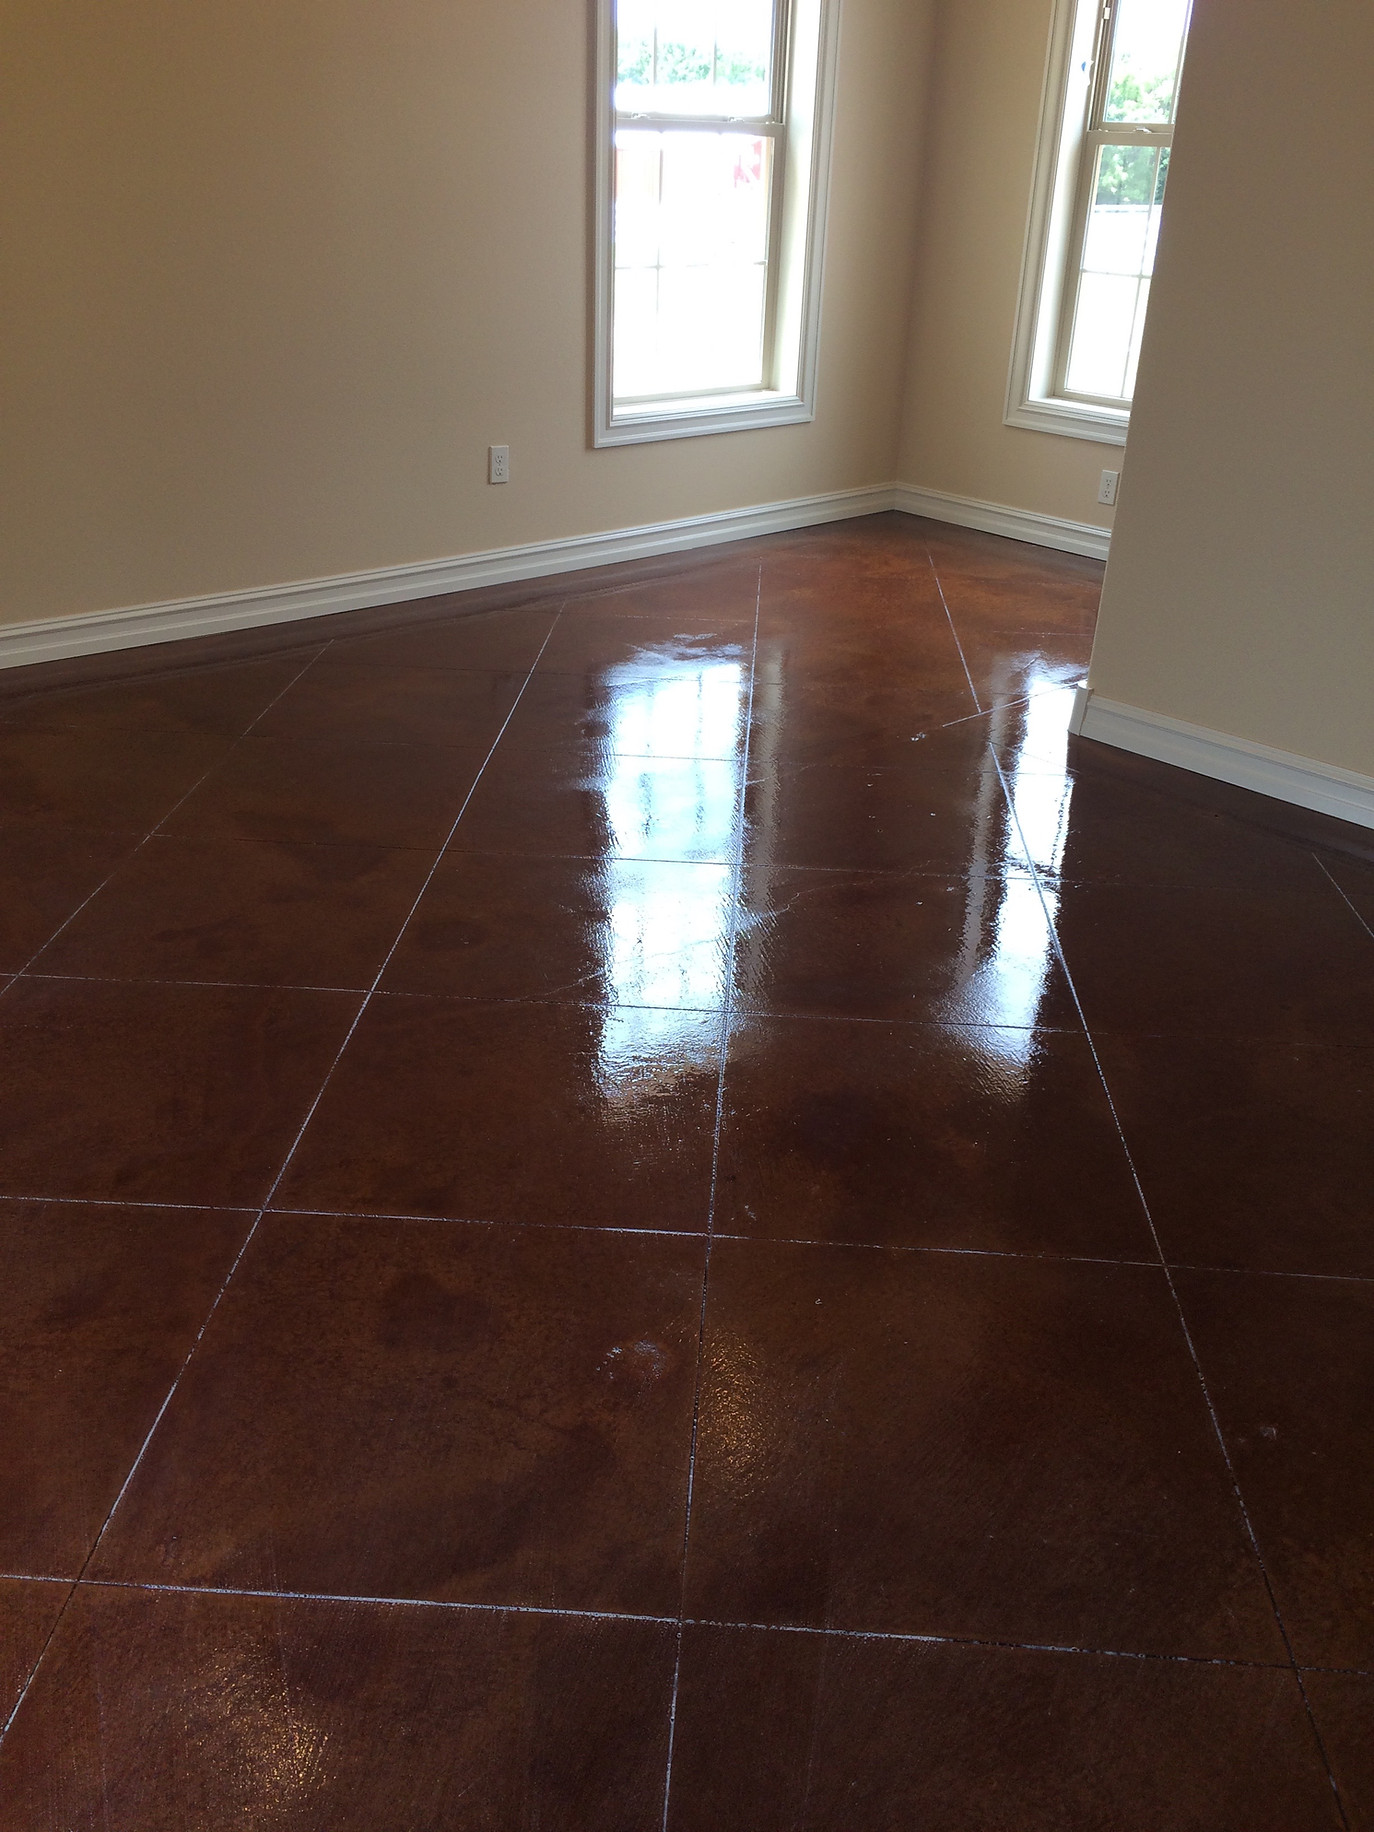 Scored stained concrete